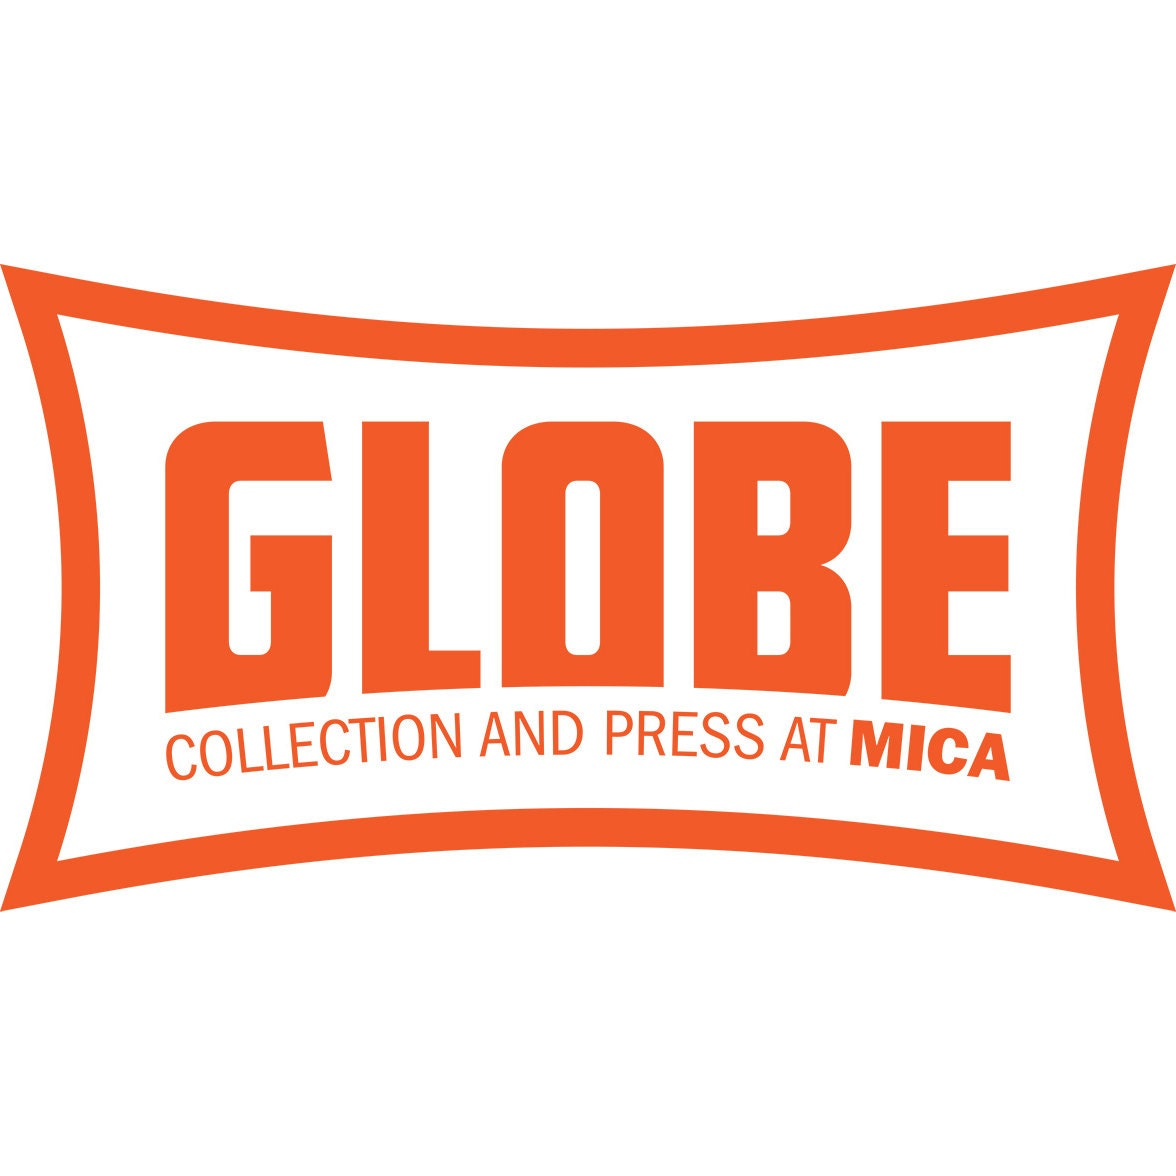 Globe at MICA by GlobePoster on Etsy